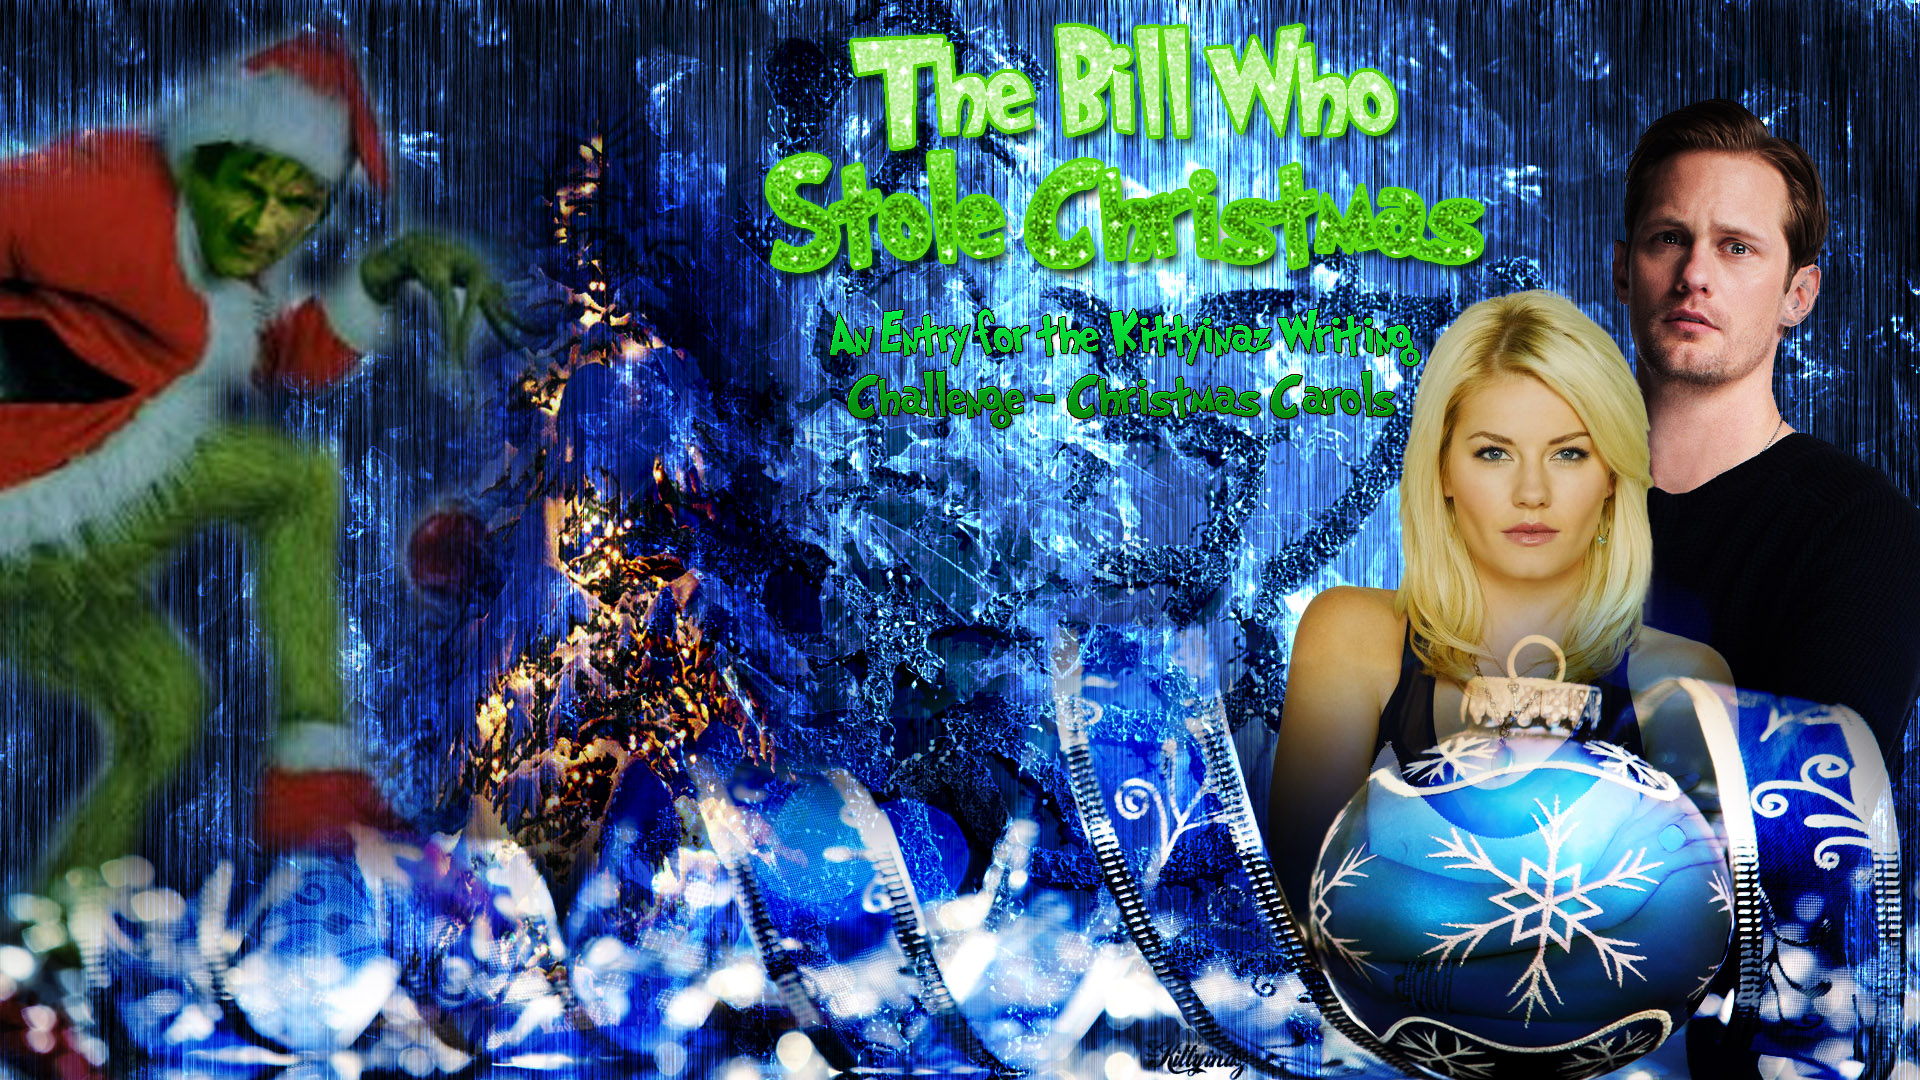 The Bill Who Stole Christmas by American Android